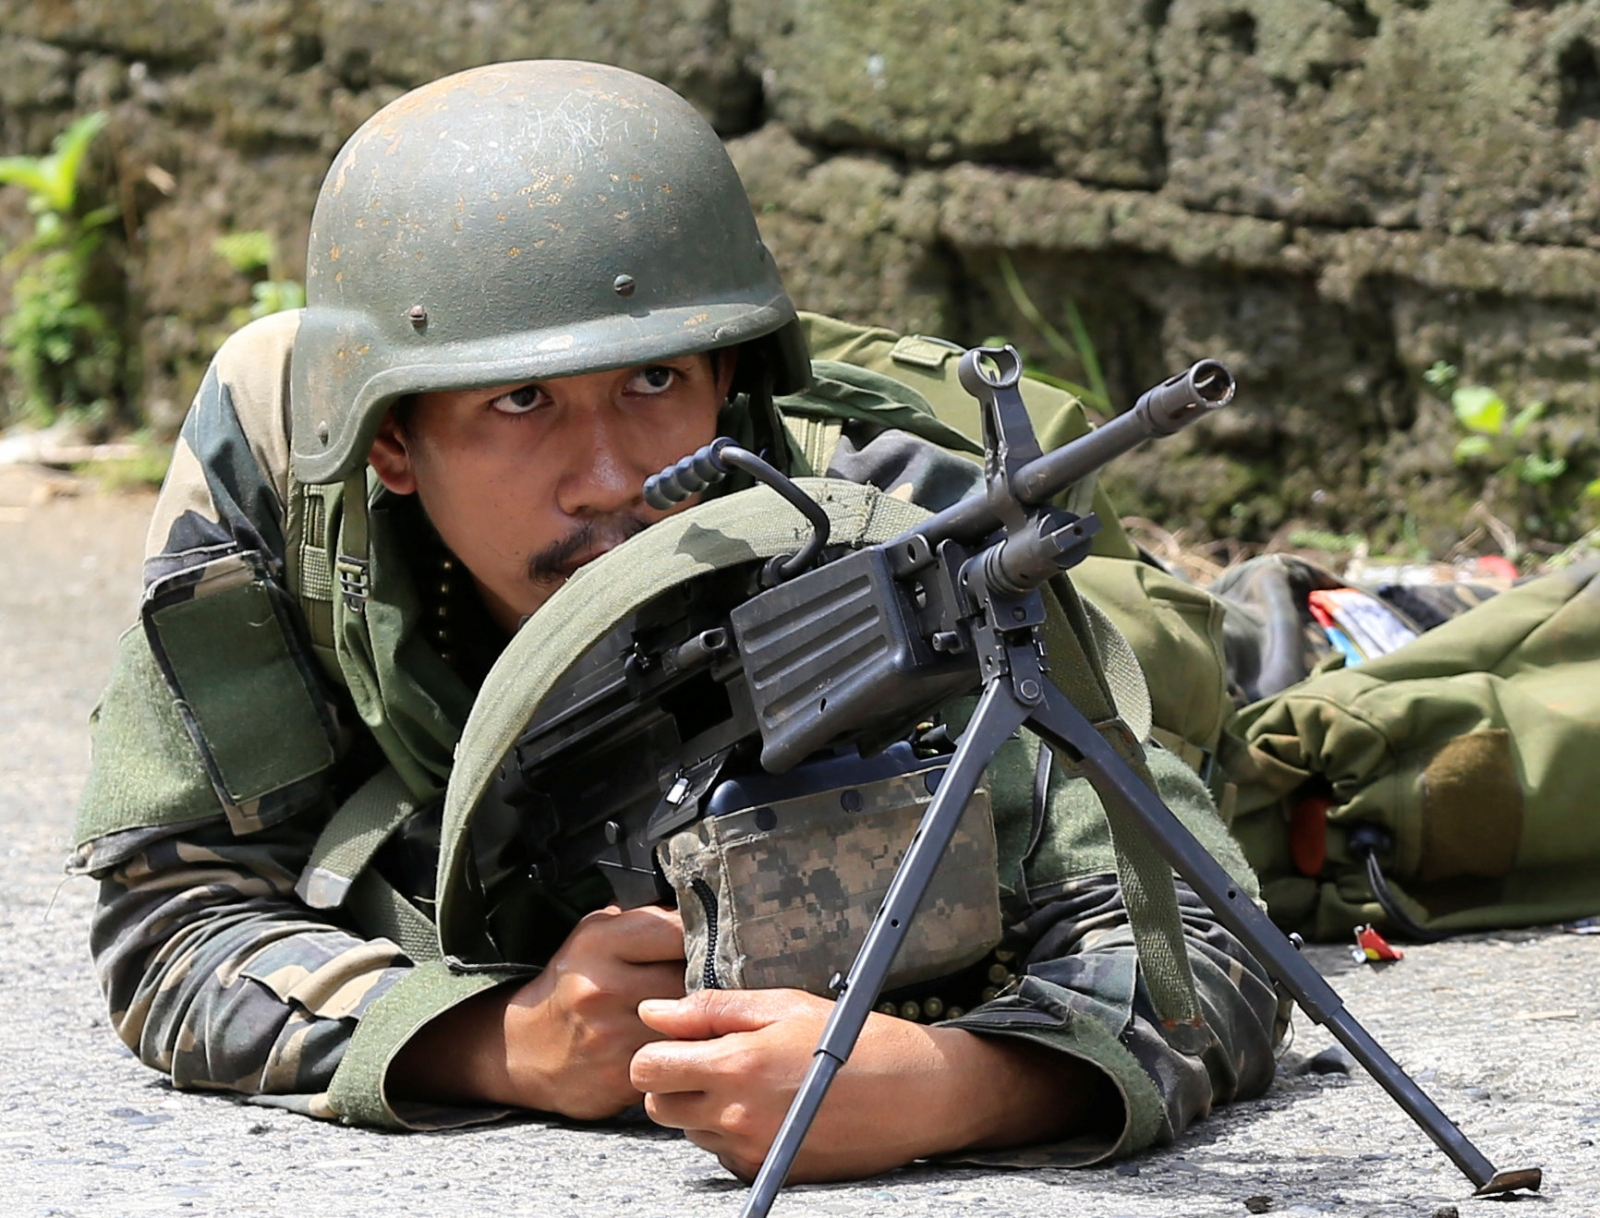 Philippine forces hit militants; civilians wave white flags